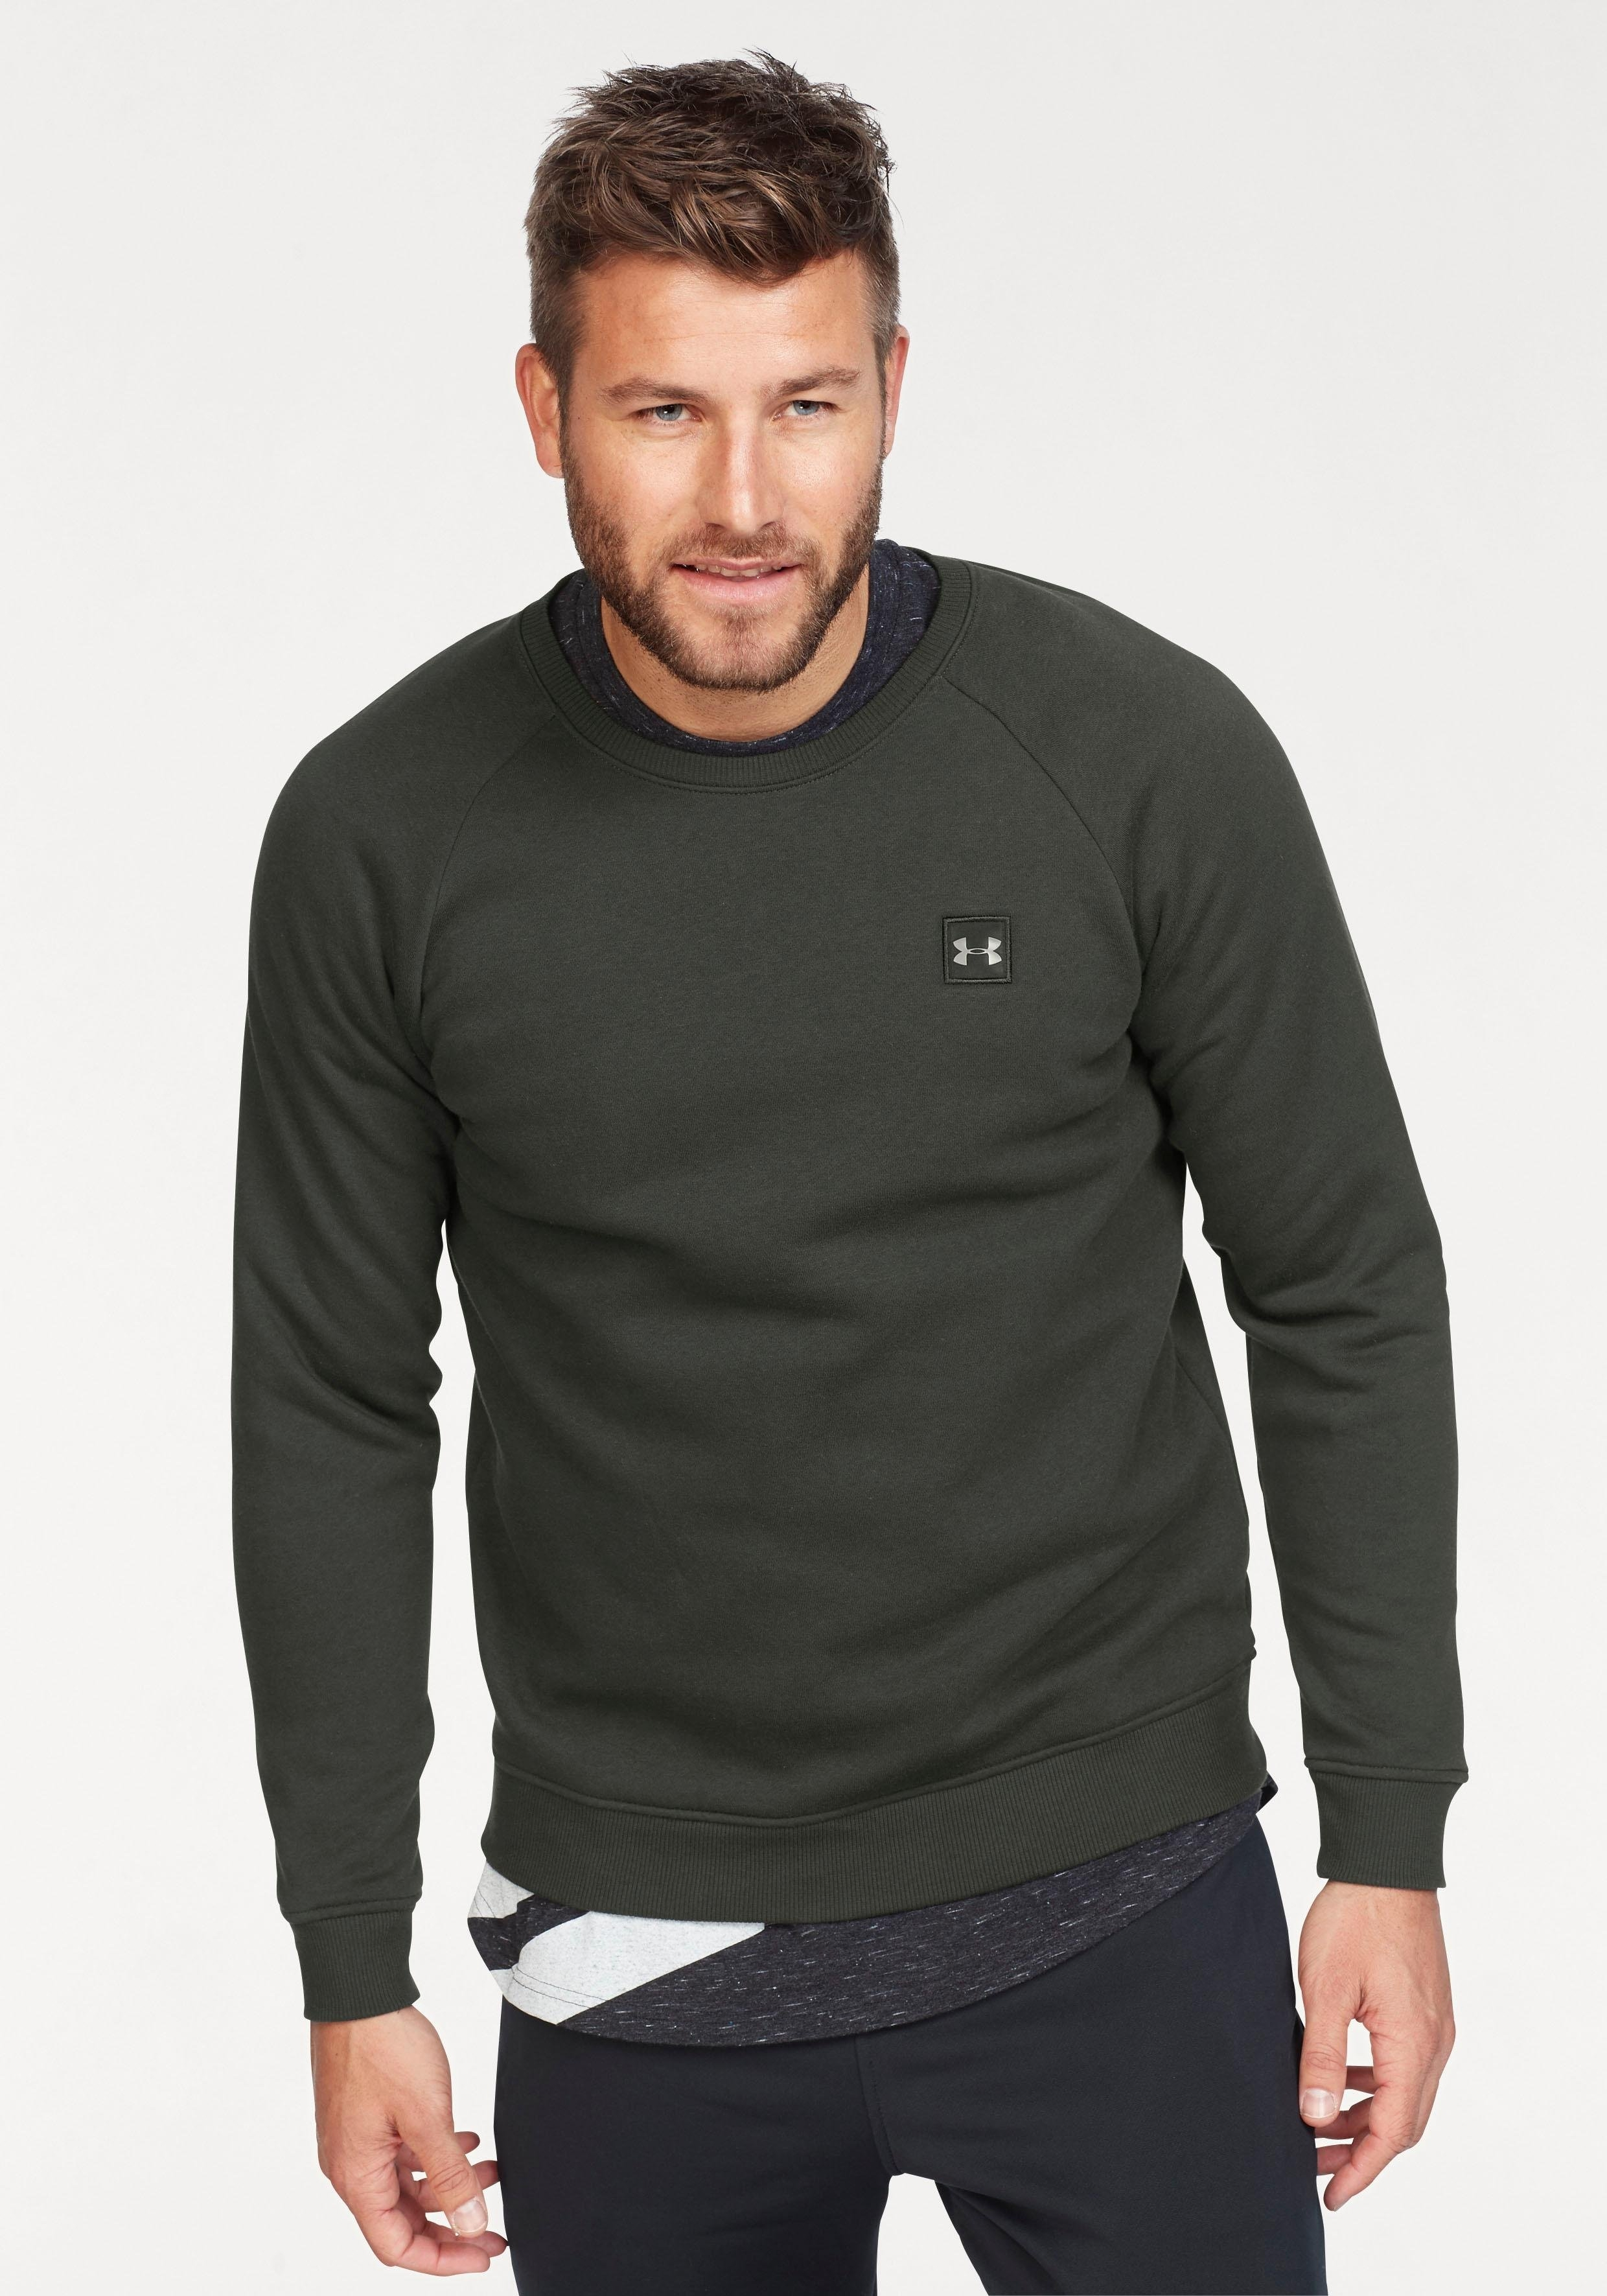 Armour® Fleece Online Bij Under Crew Sweatshirtrival SVUMGLqzp